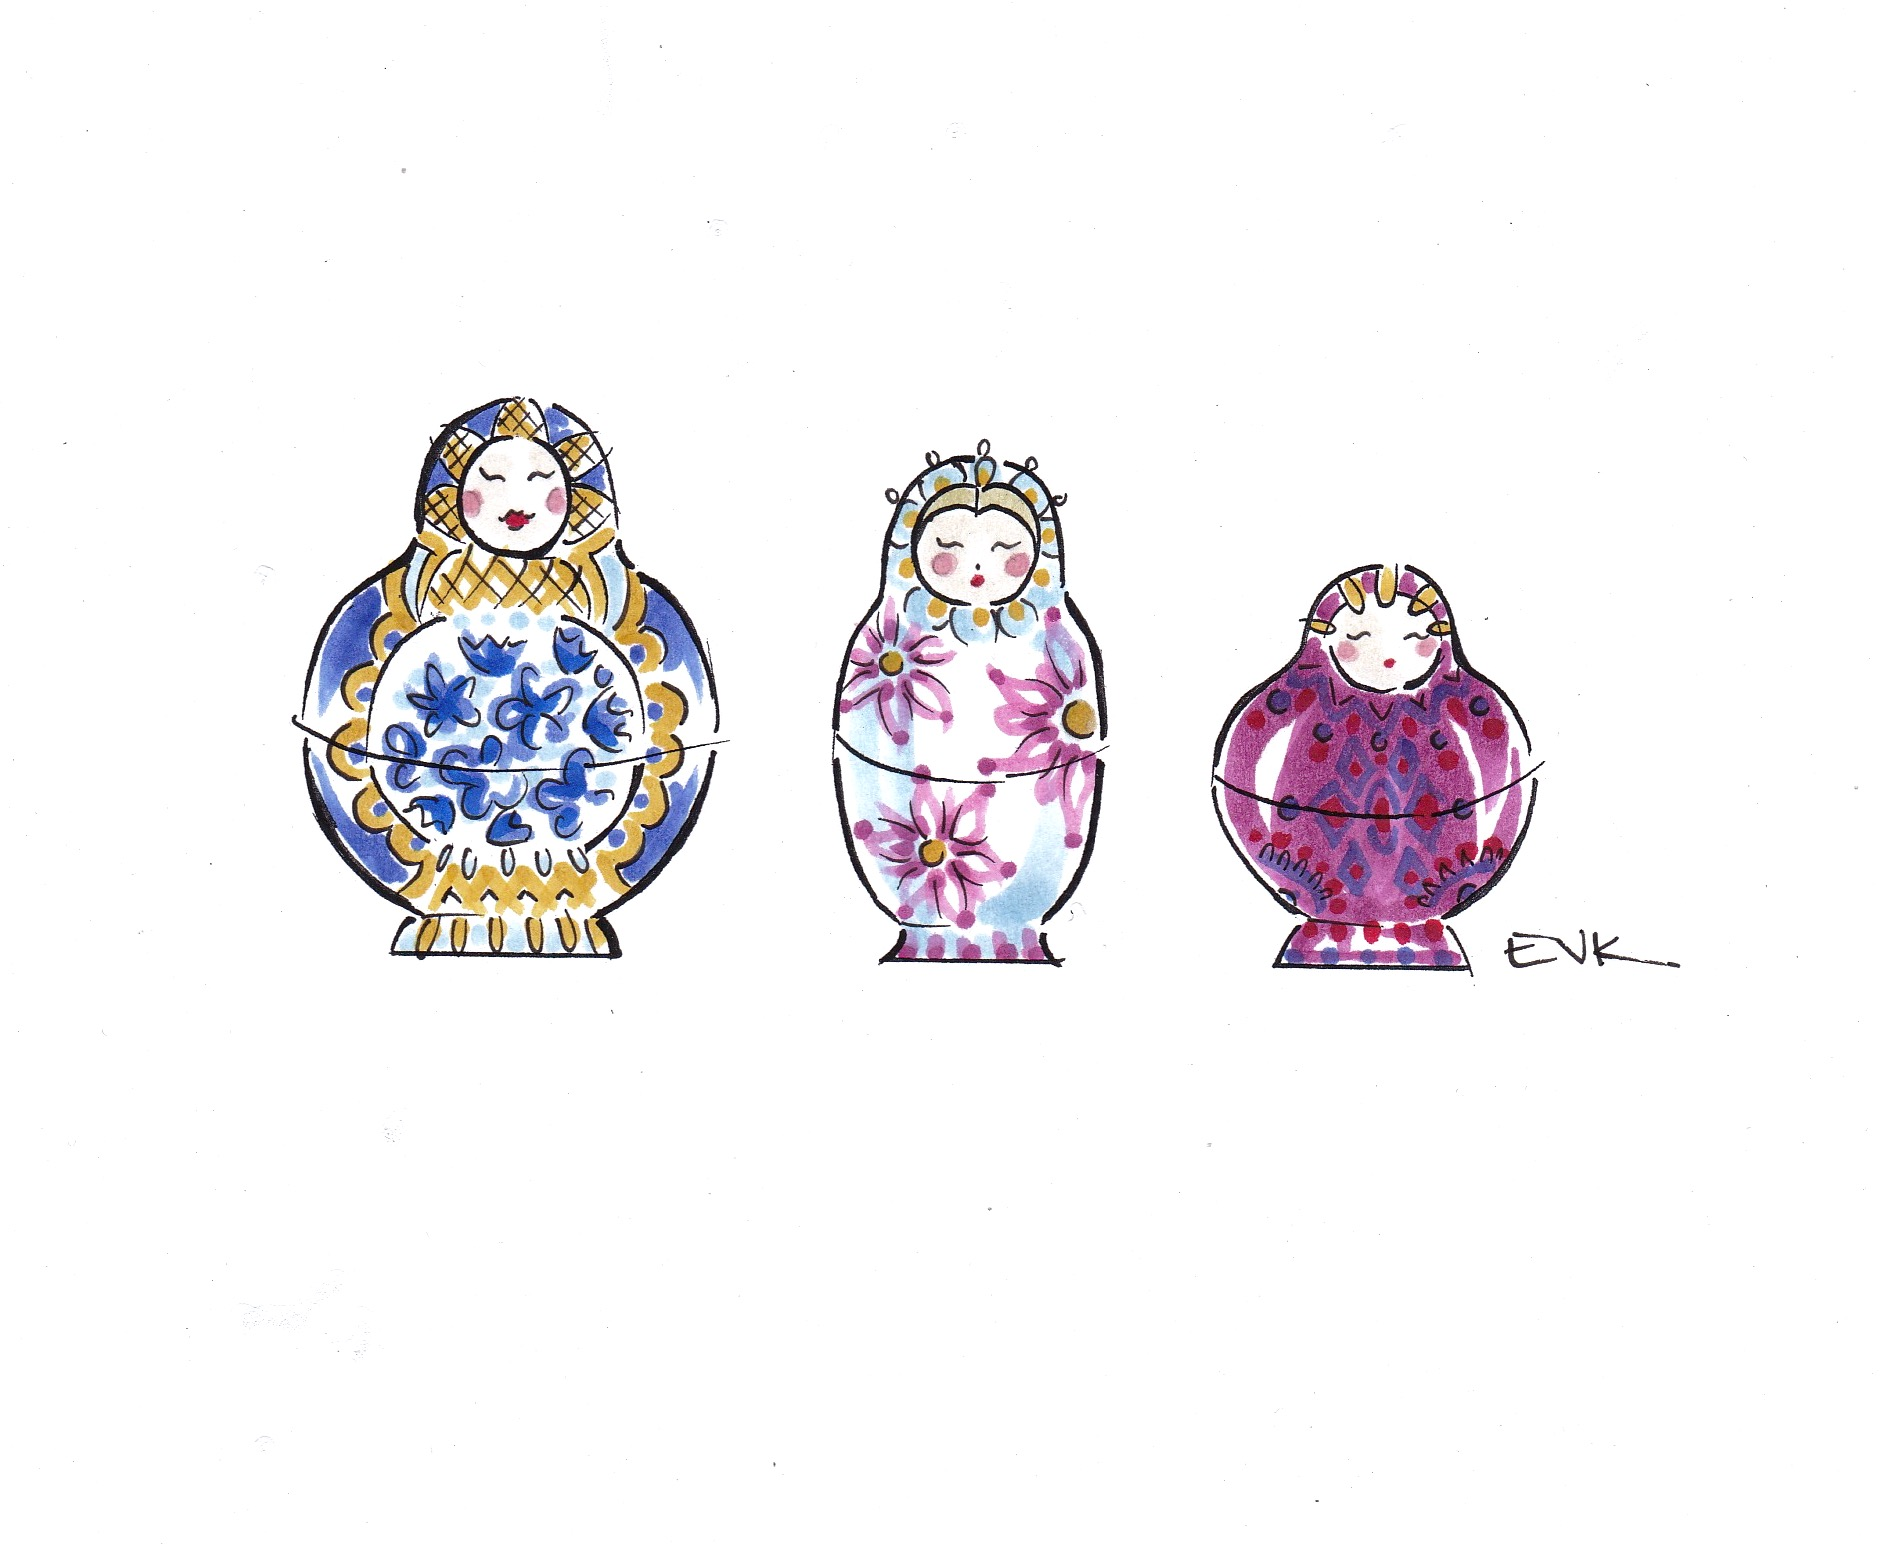 Three Russian Nesting Dolls  (2015) Marker and ink on archival bond, 4 x 6 inches© 2015 Elise Vavrus Krohn